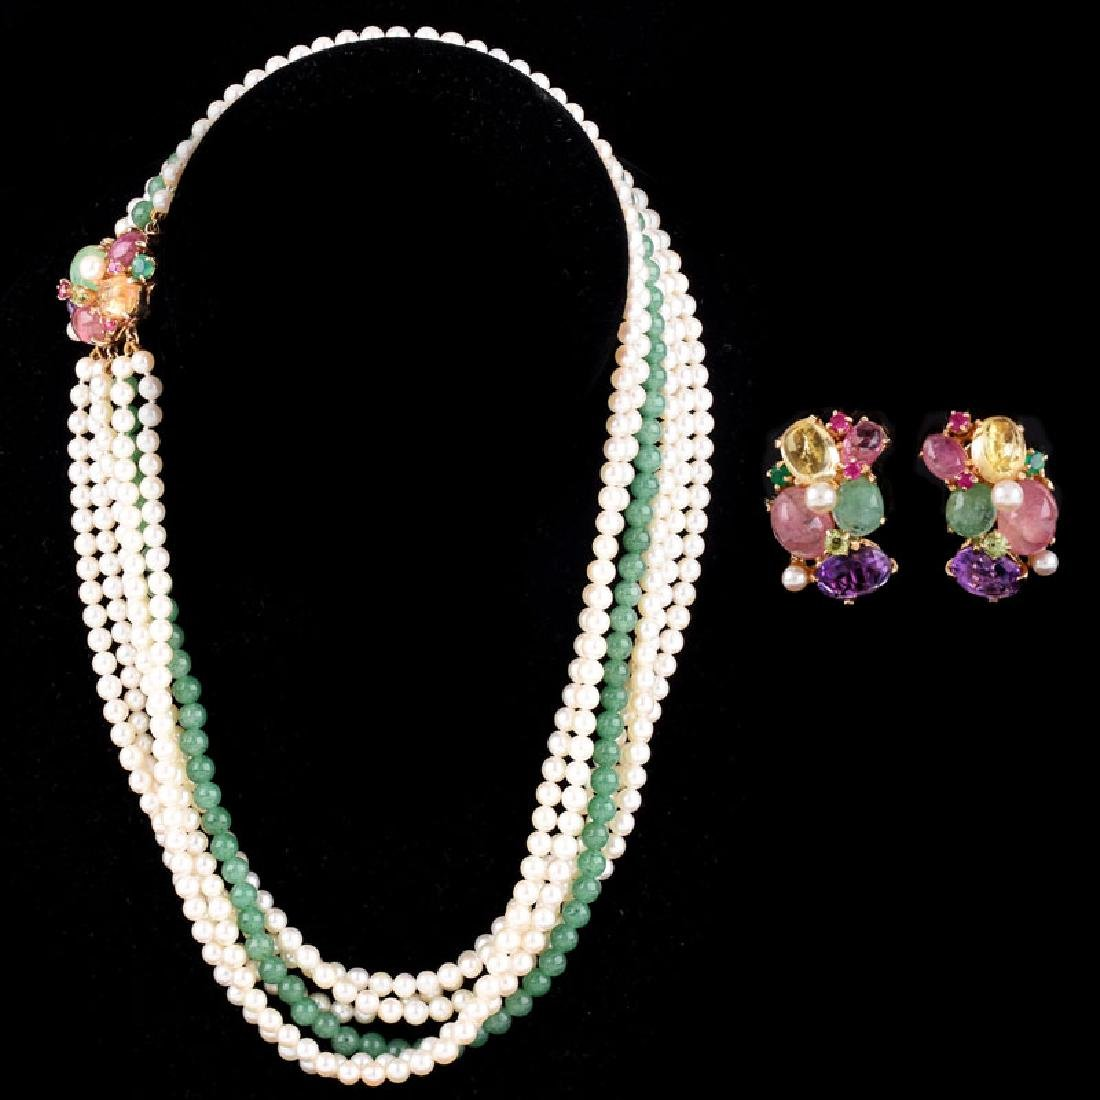 Vintage Pearl and Chalcedony Multi Strand Necklace with